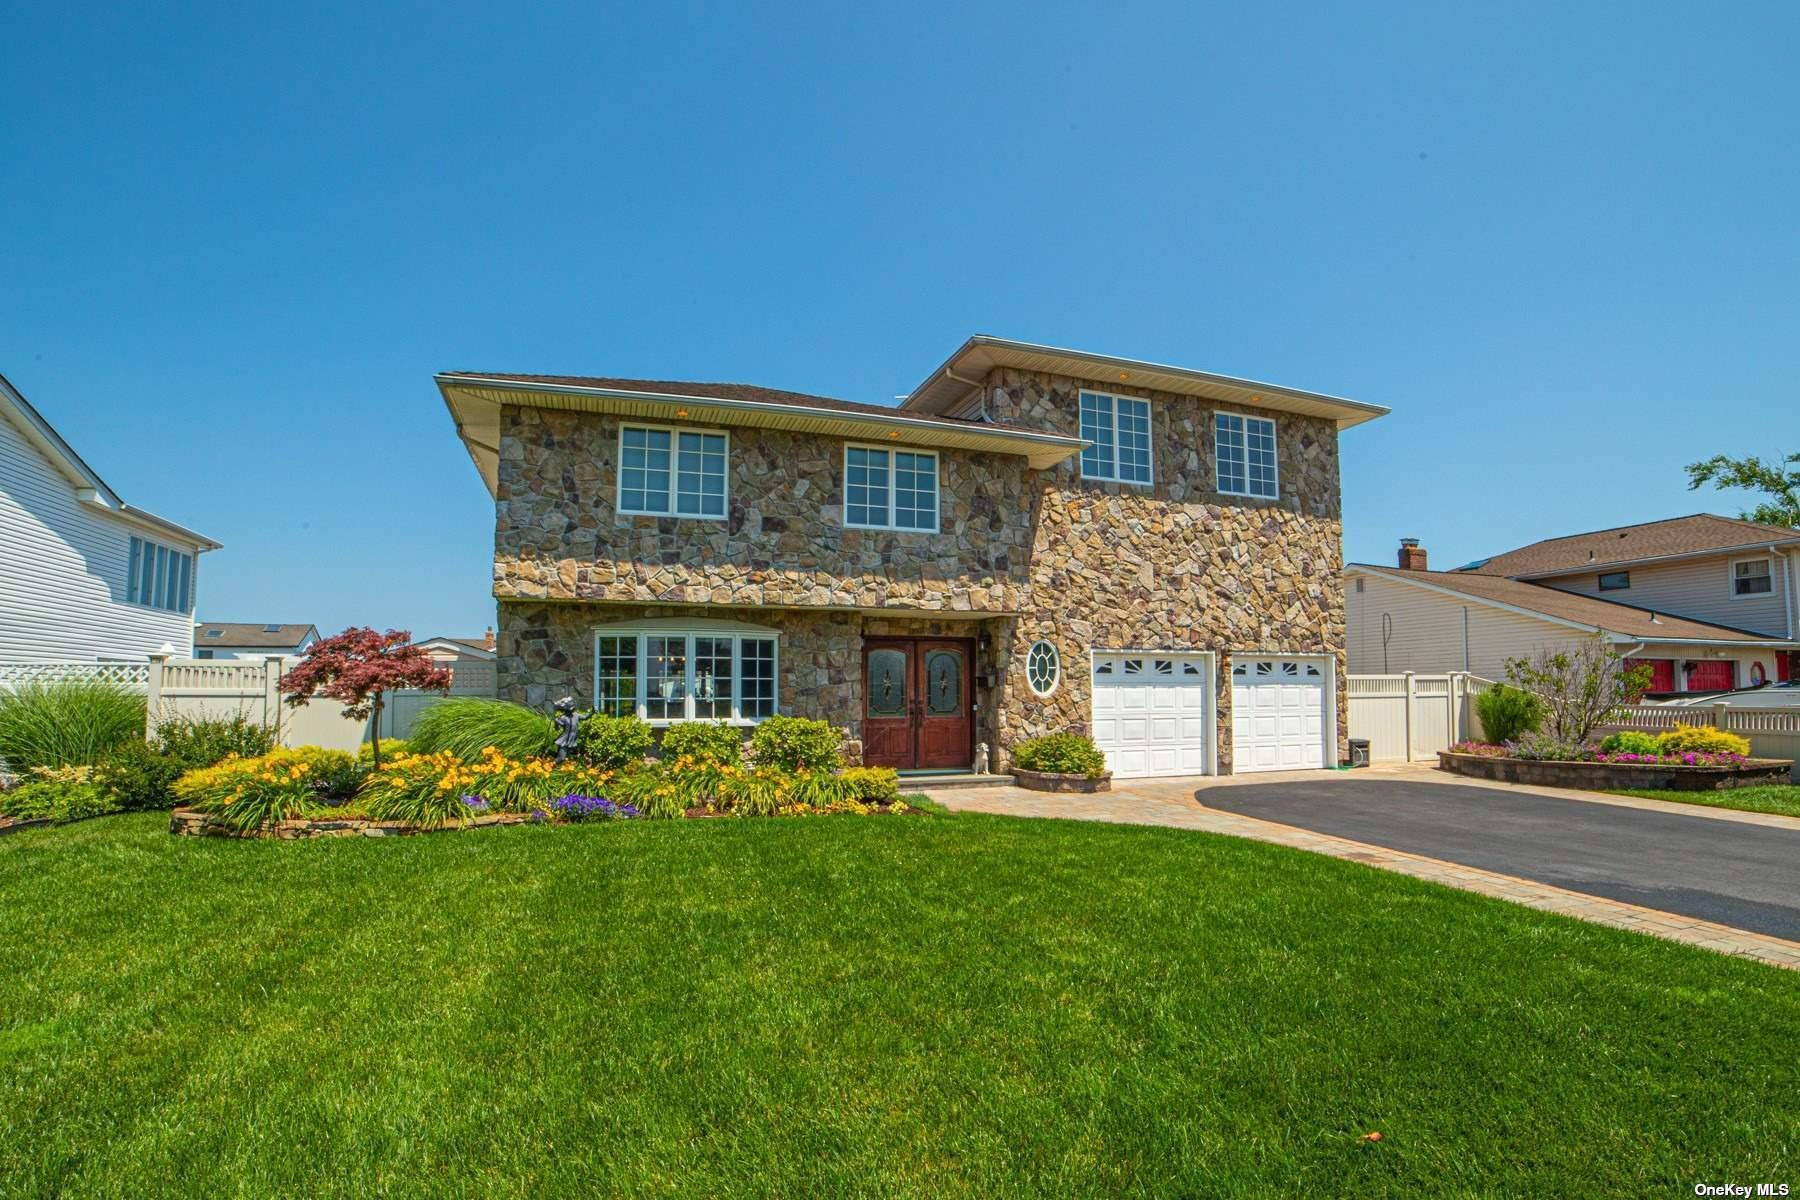 Stunning Updated and Expanded Splanch, Bayviews and Deep water Docking, 75ft Bulkhead w/Elec, 25x25 MBr Suite, w/WIC and AMAZING Views of Great South Bay and Robert Moses Bridge, Country Club Yard Backed by Heated Gunite IGP, Attached Spa, Waterfalls, Wet Bar, Kitchen w/Gas Line for Grill, 3 Stunning Balconies w/Trek Decking Overlooking The Backyard.